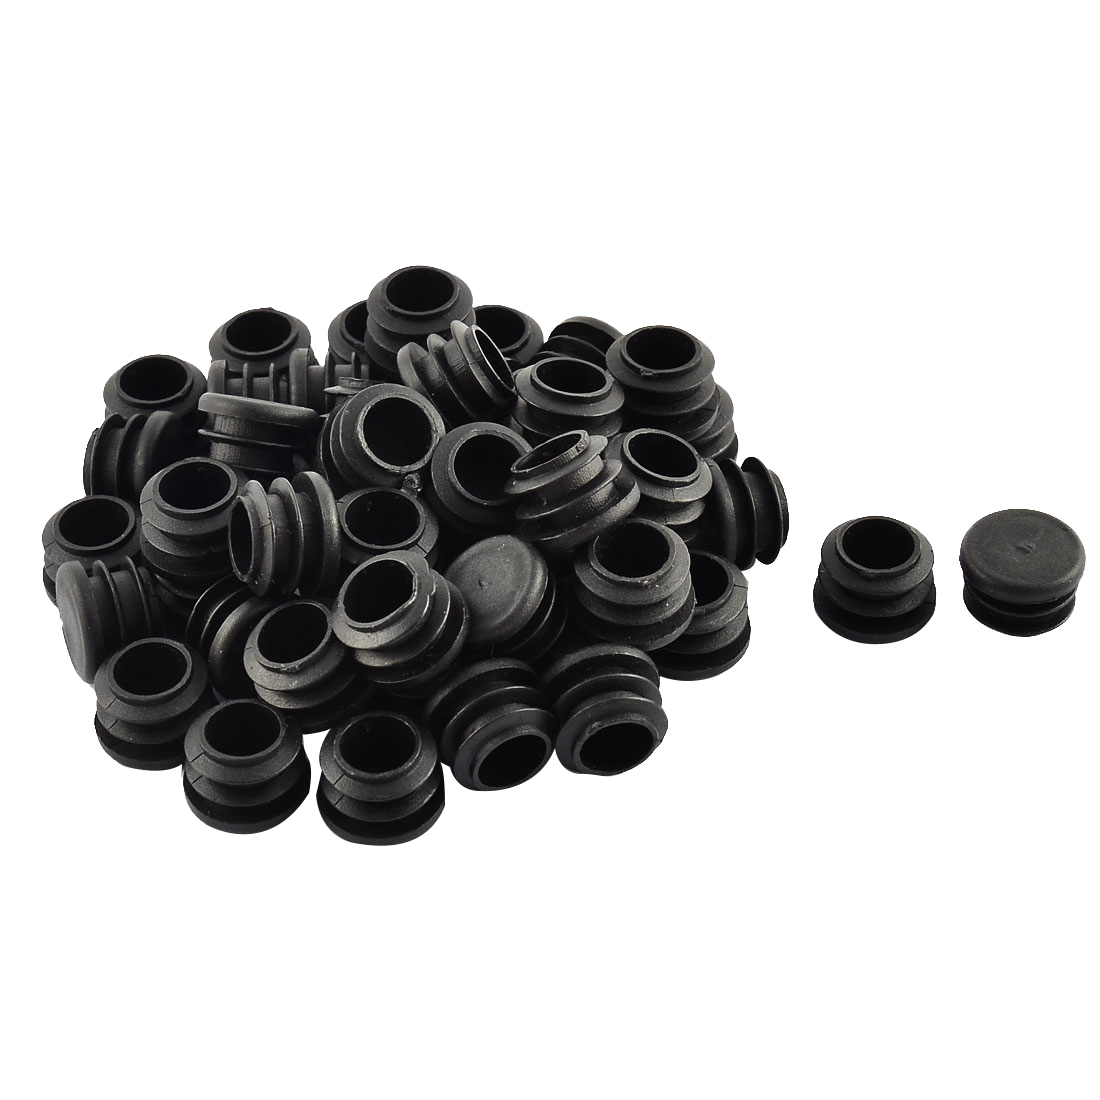 Floor Protect Plastic Round Chair Leg Pipe Tube Insert Blanking Caps 17mm Dia 50pcs